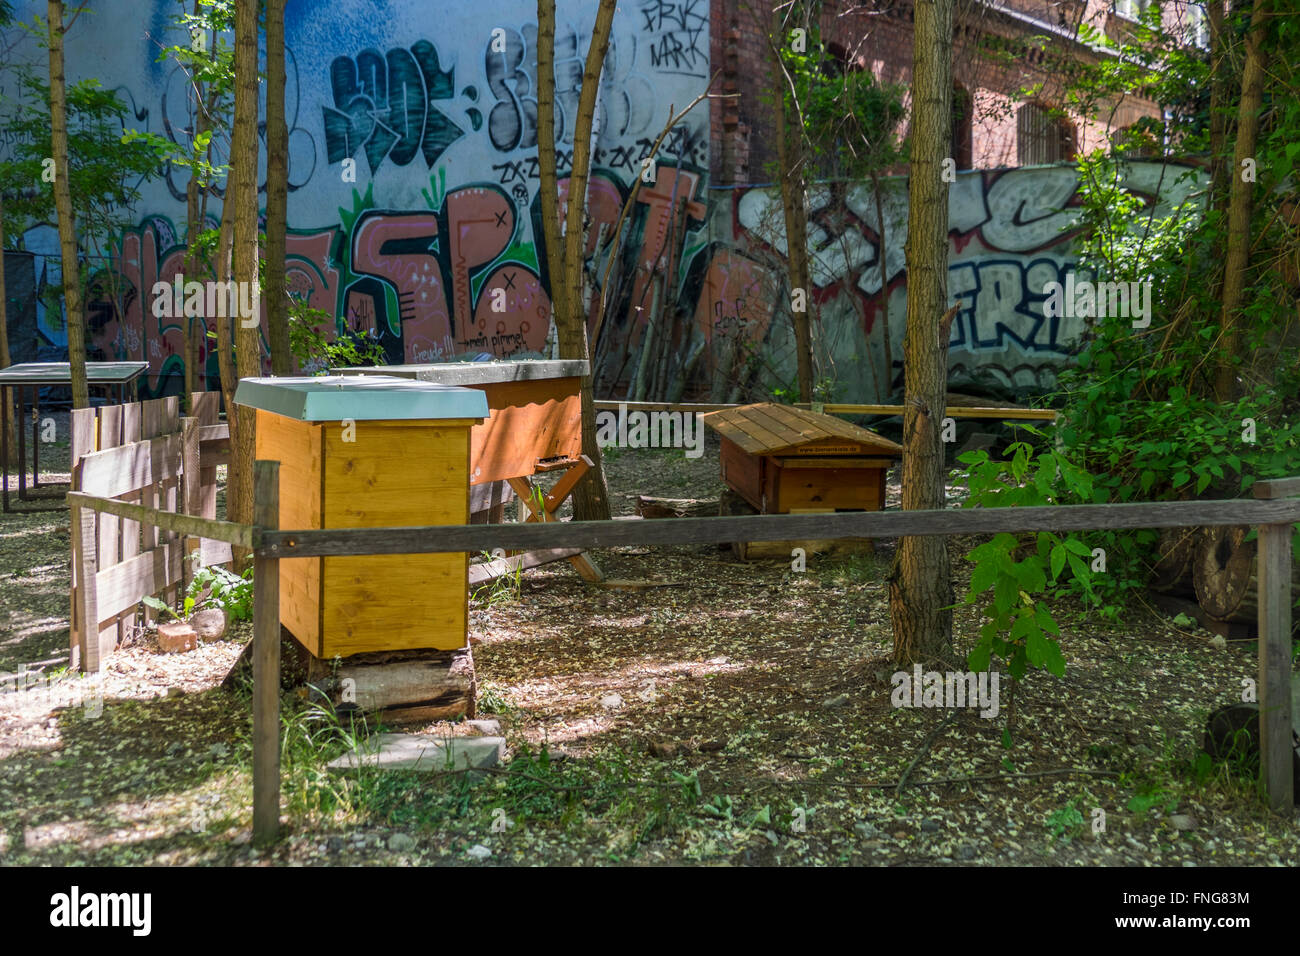 Prinzessinnengarten, Princesses garden, an urban agricultural project. Gardeners grow vegetable and use recycled - Stock Image